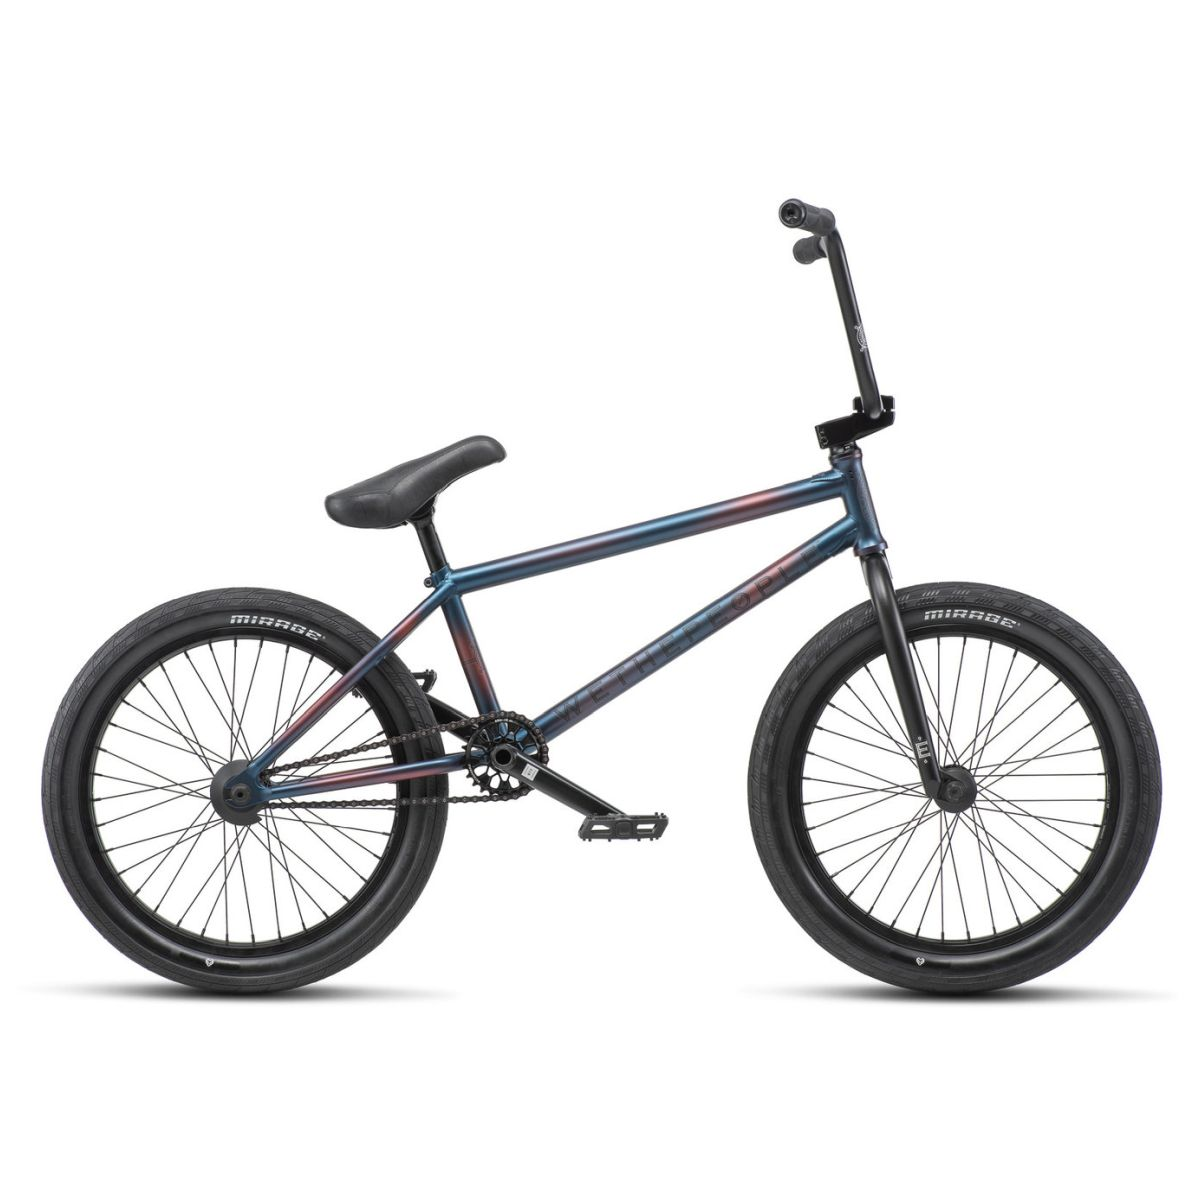 Rower BMX WTP Envy 9 Burnt Metal